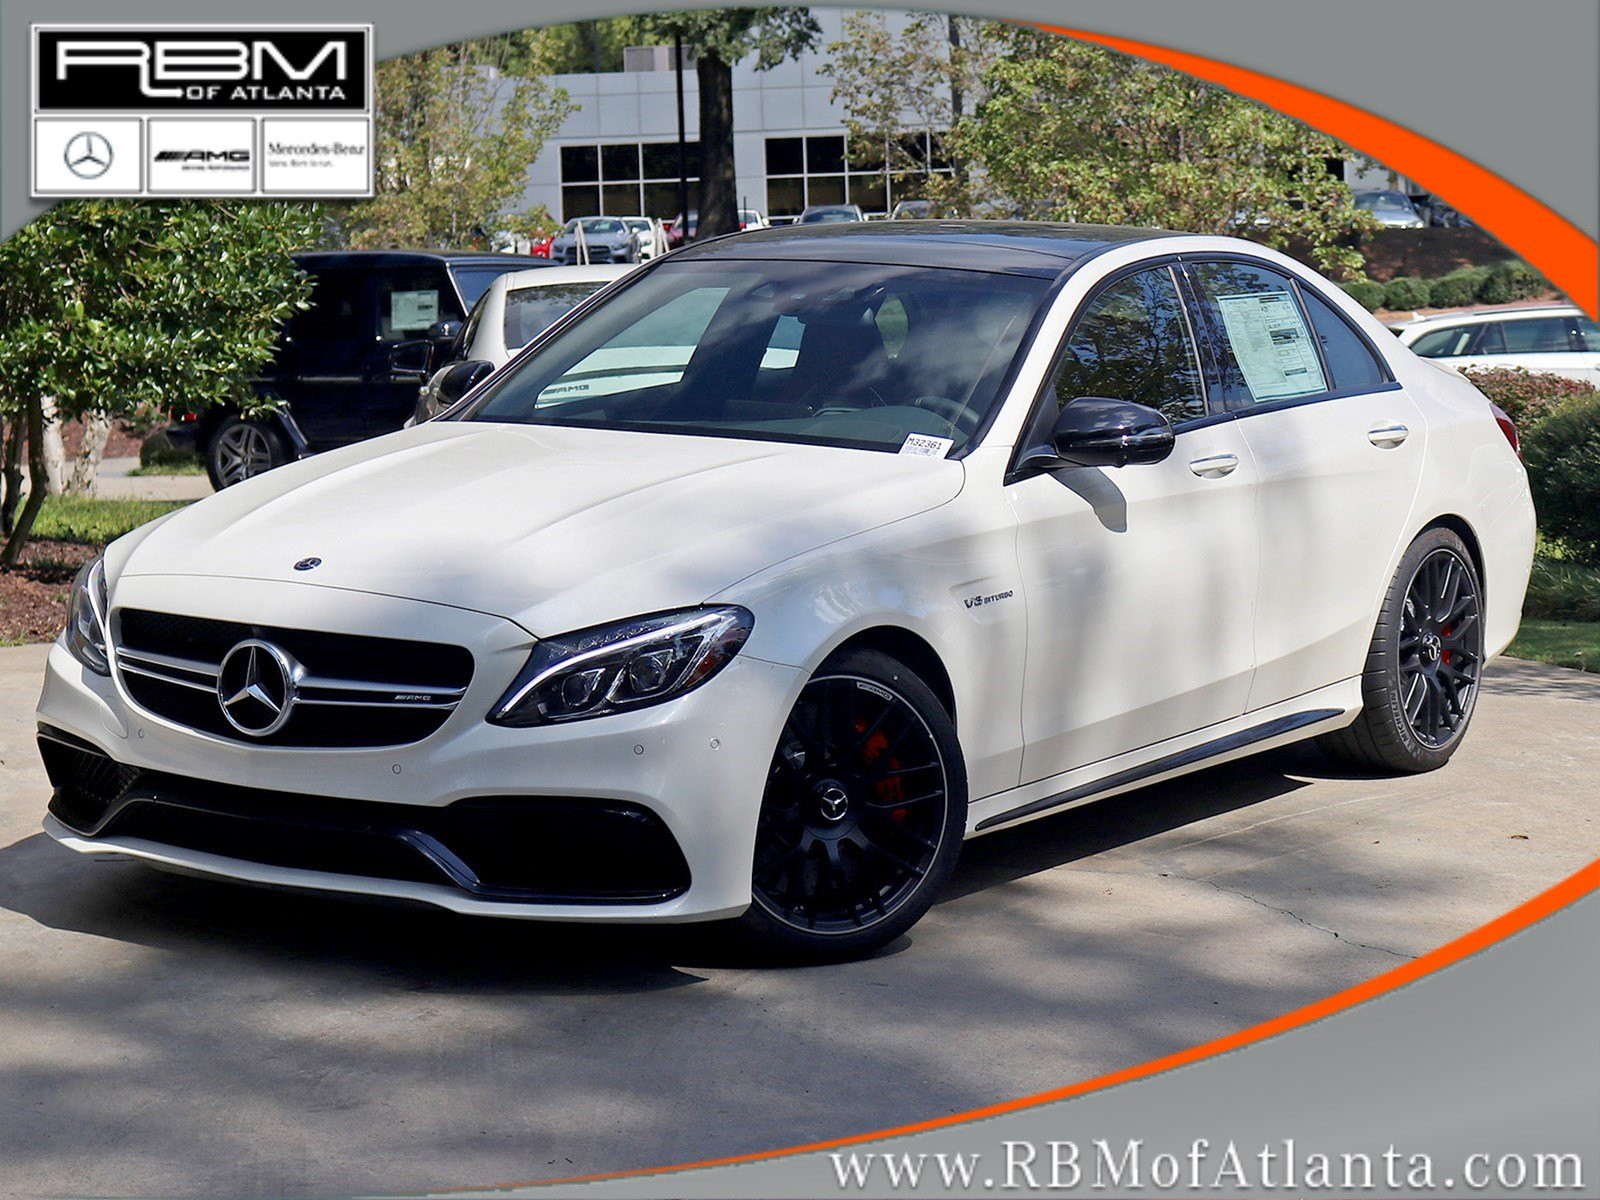 new 2018 mercedes benz c class amg c 63 s sedan sedan in atlanta m32361 rbm of atlanta. Black Bedroom Furniture Sets. Home Design Ideas